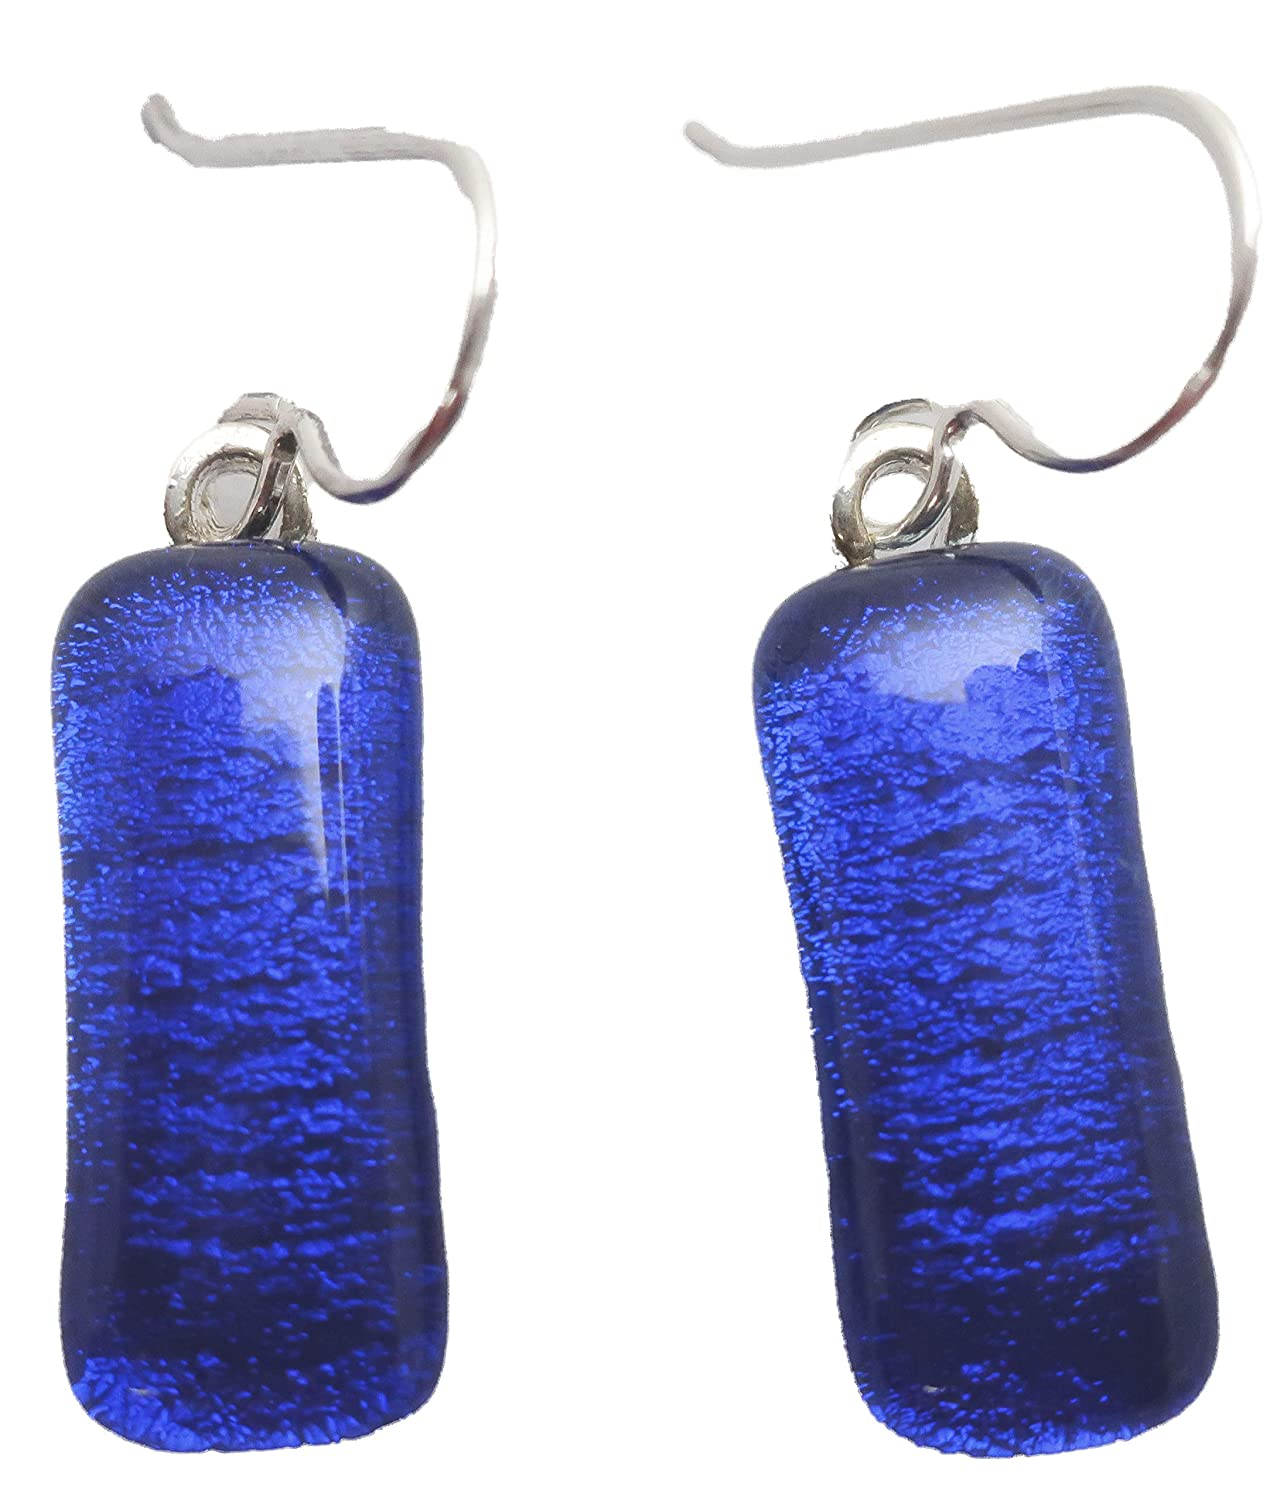 Chain Set34. Dichroic Dangling Earring Square Pendant Cobalt Blue Dichroic Glass Necklace Earring Set Complete Gift Fused Glass Pendant